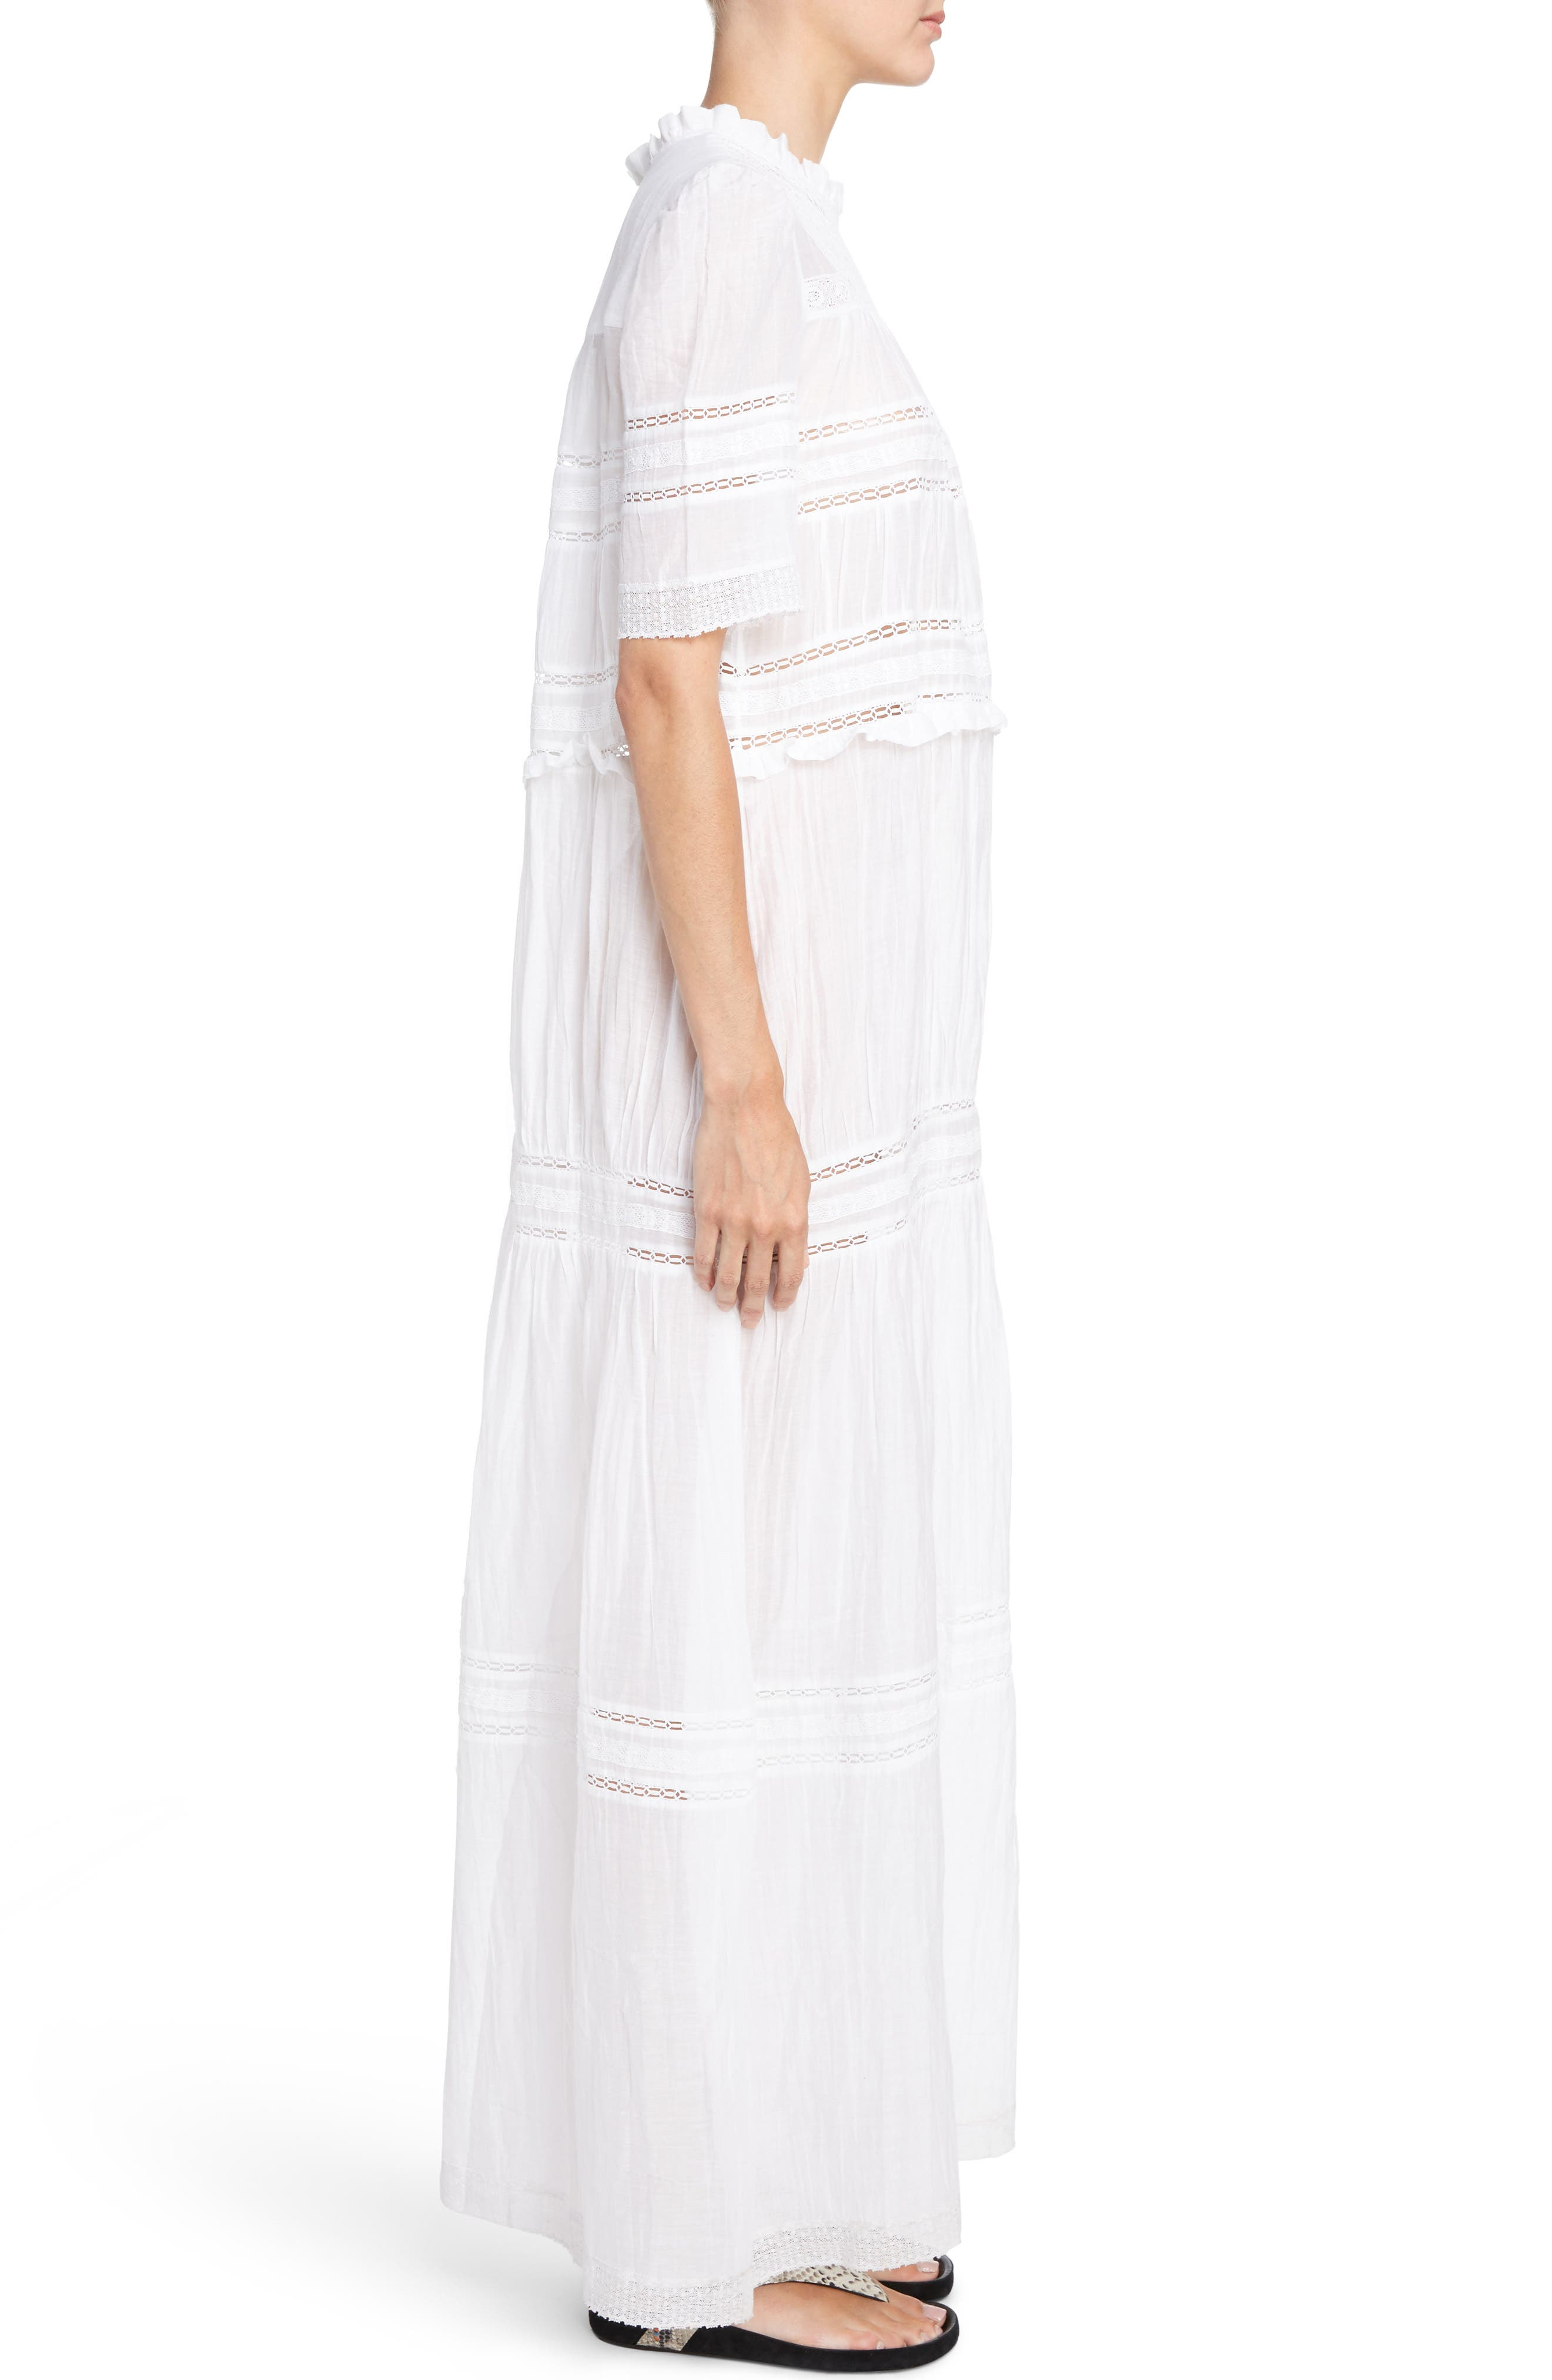 Vealy Maxi Dress,                             Alternate thumbnail 3, color,                             100